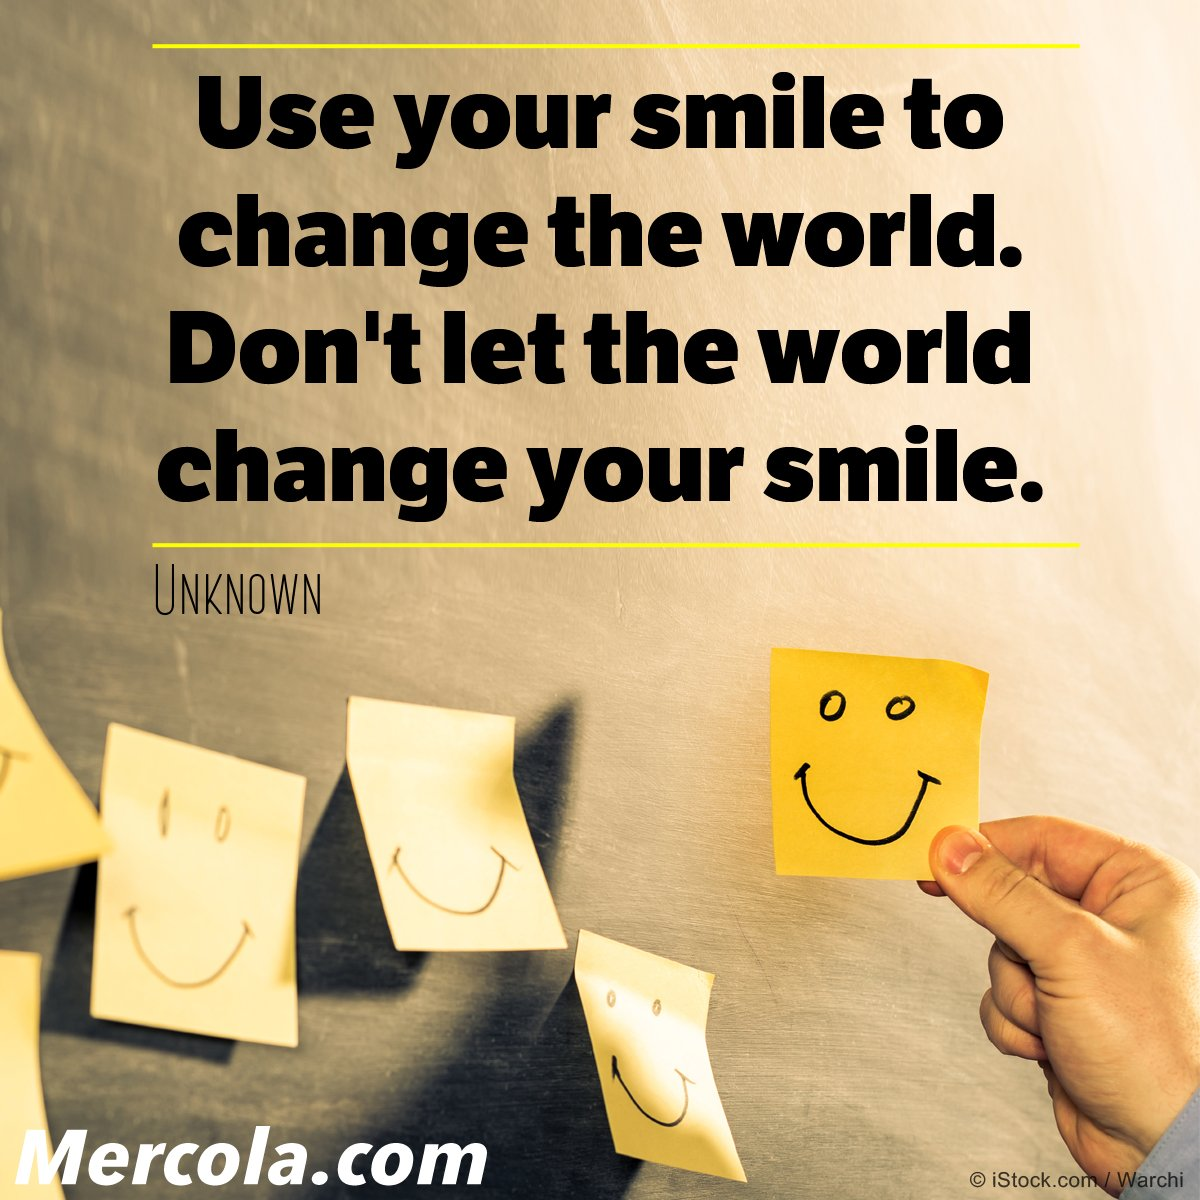 Dr Joseph Mercola On Twitter Use Your Smile To Change The World